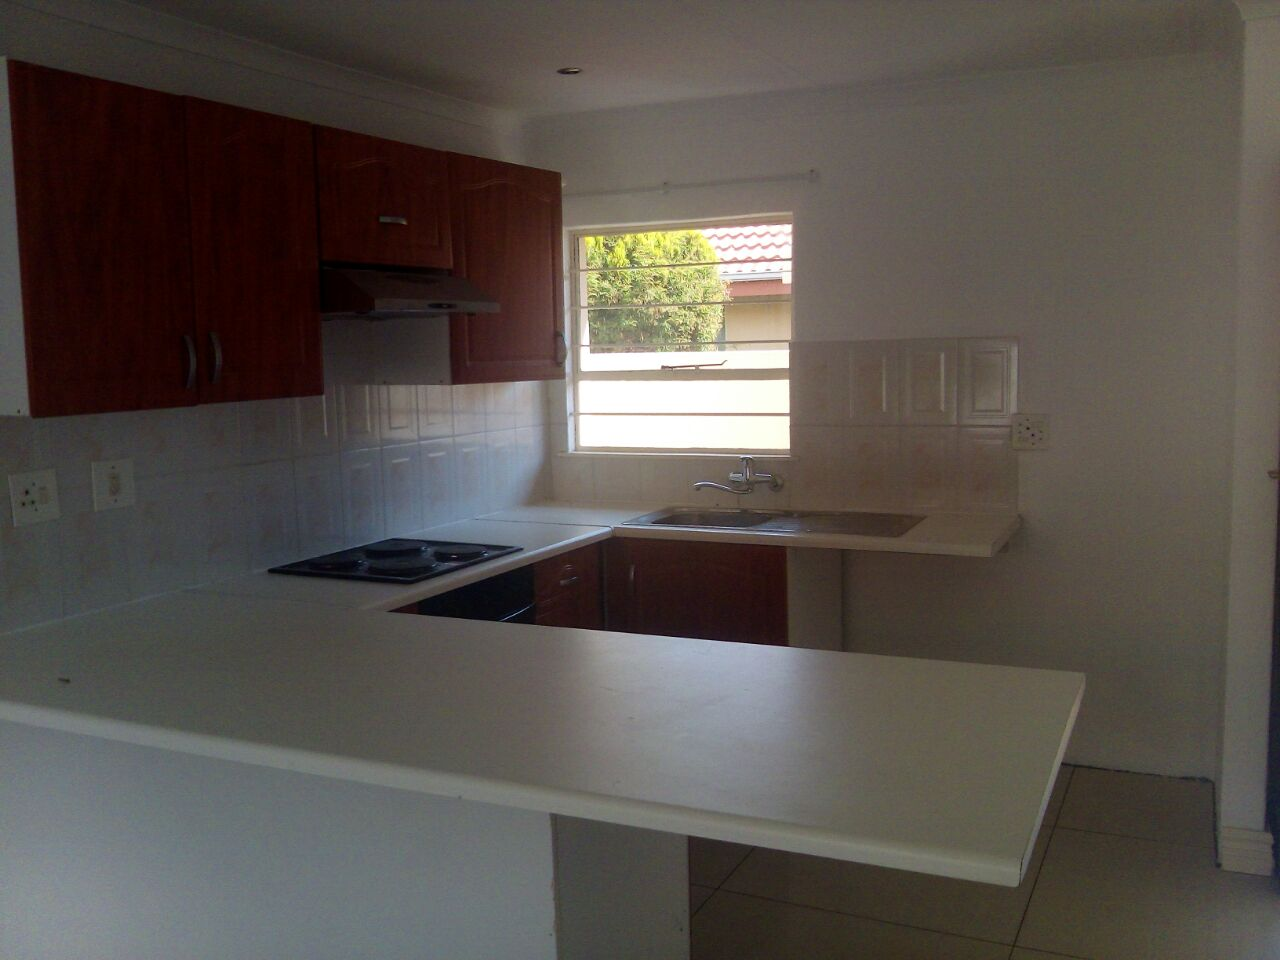 2 Bedroom Townhouse for sale in Sunninghill ENT0074719 : photo#5